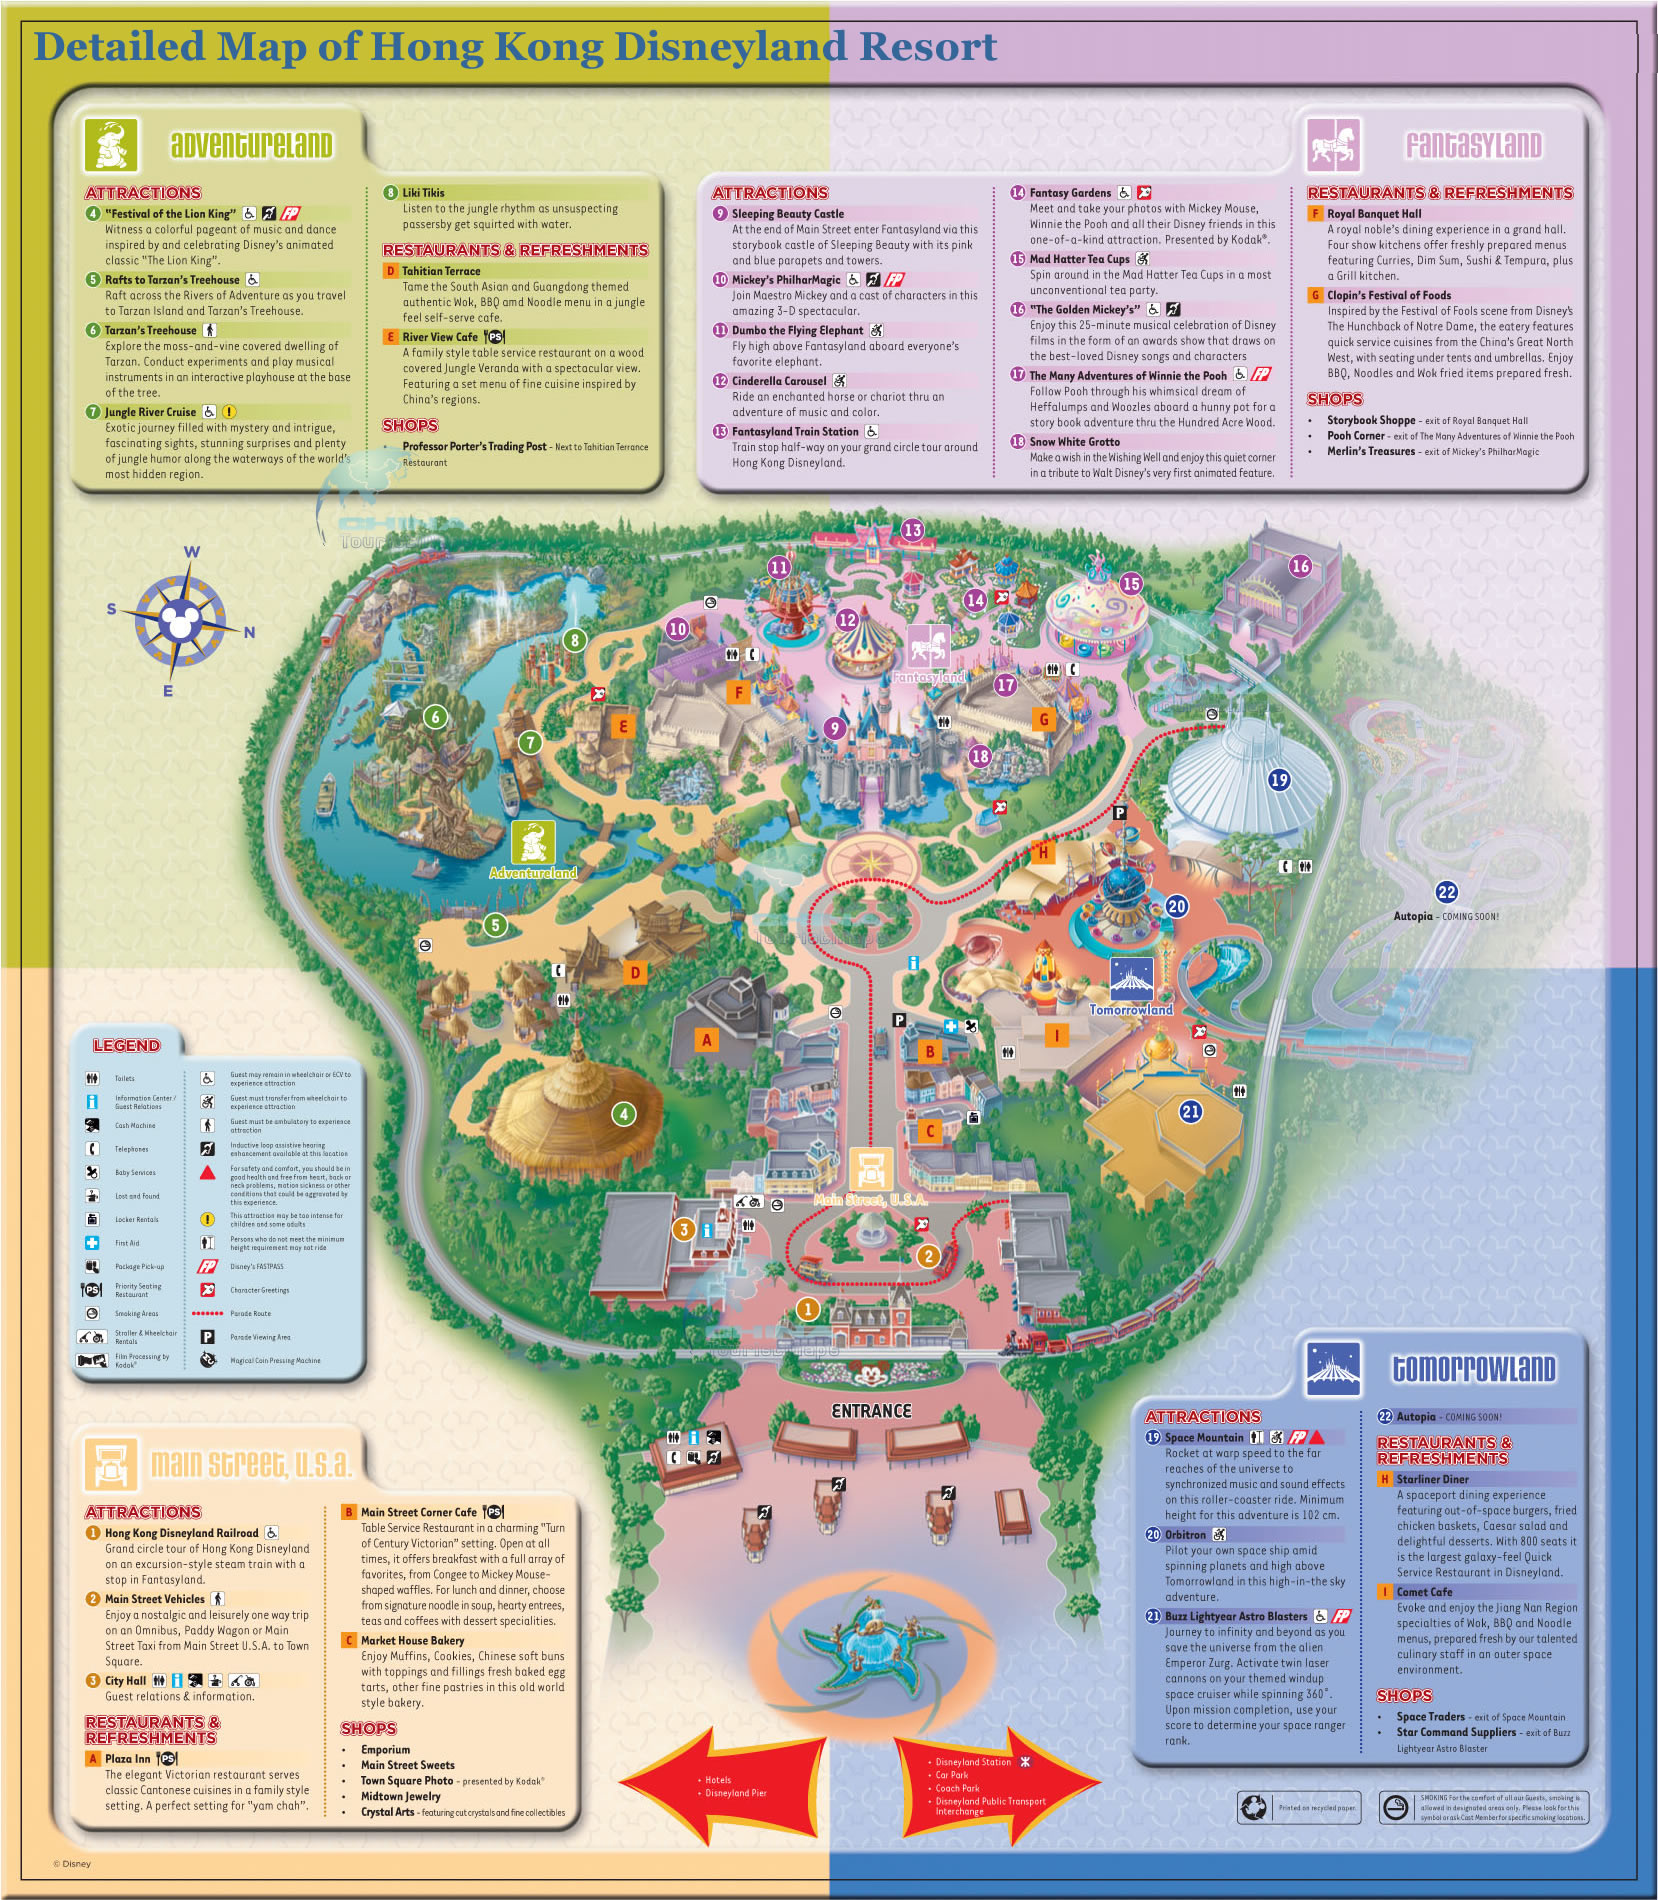 Detailed map of hong kong disneyland resort four themed lands detailed map of hong kong disneyland resort four themed lands attractions publicscrutiny Images